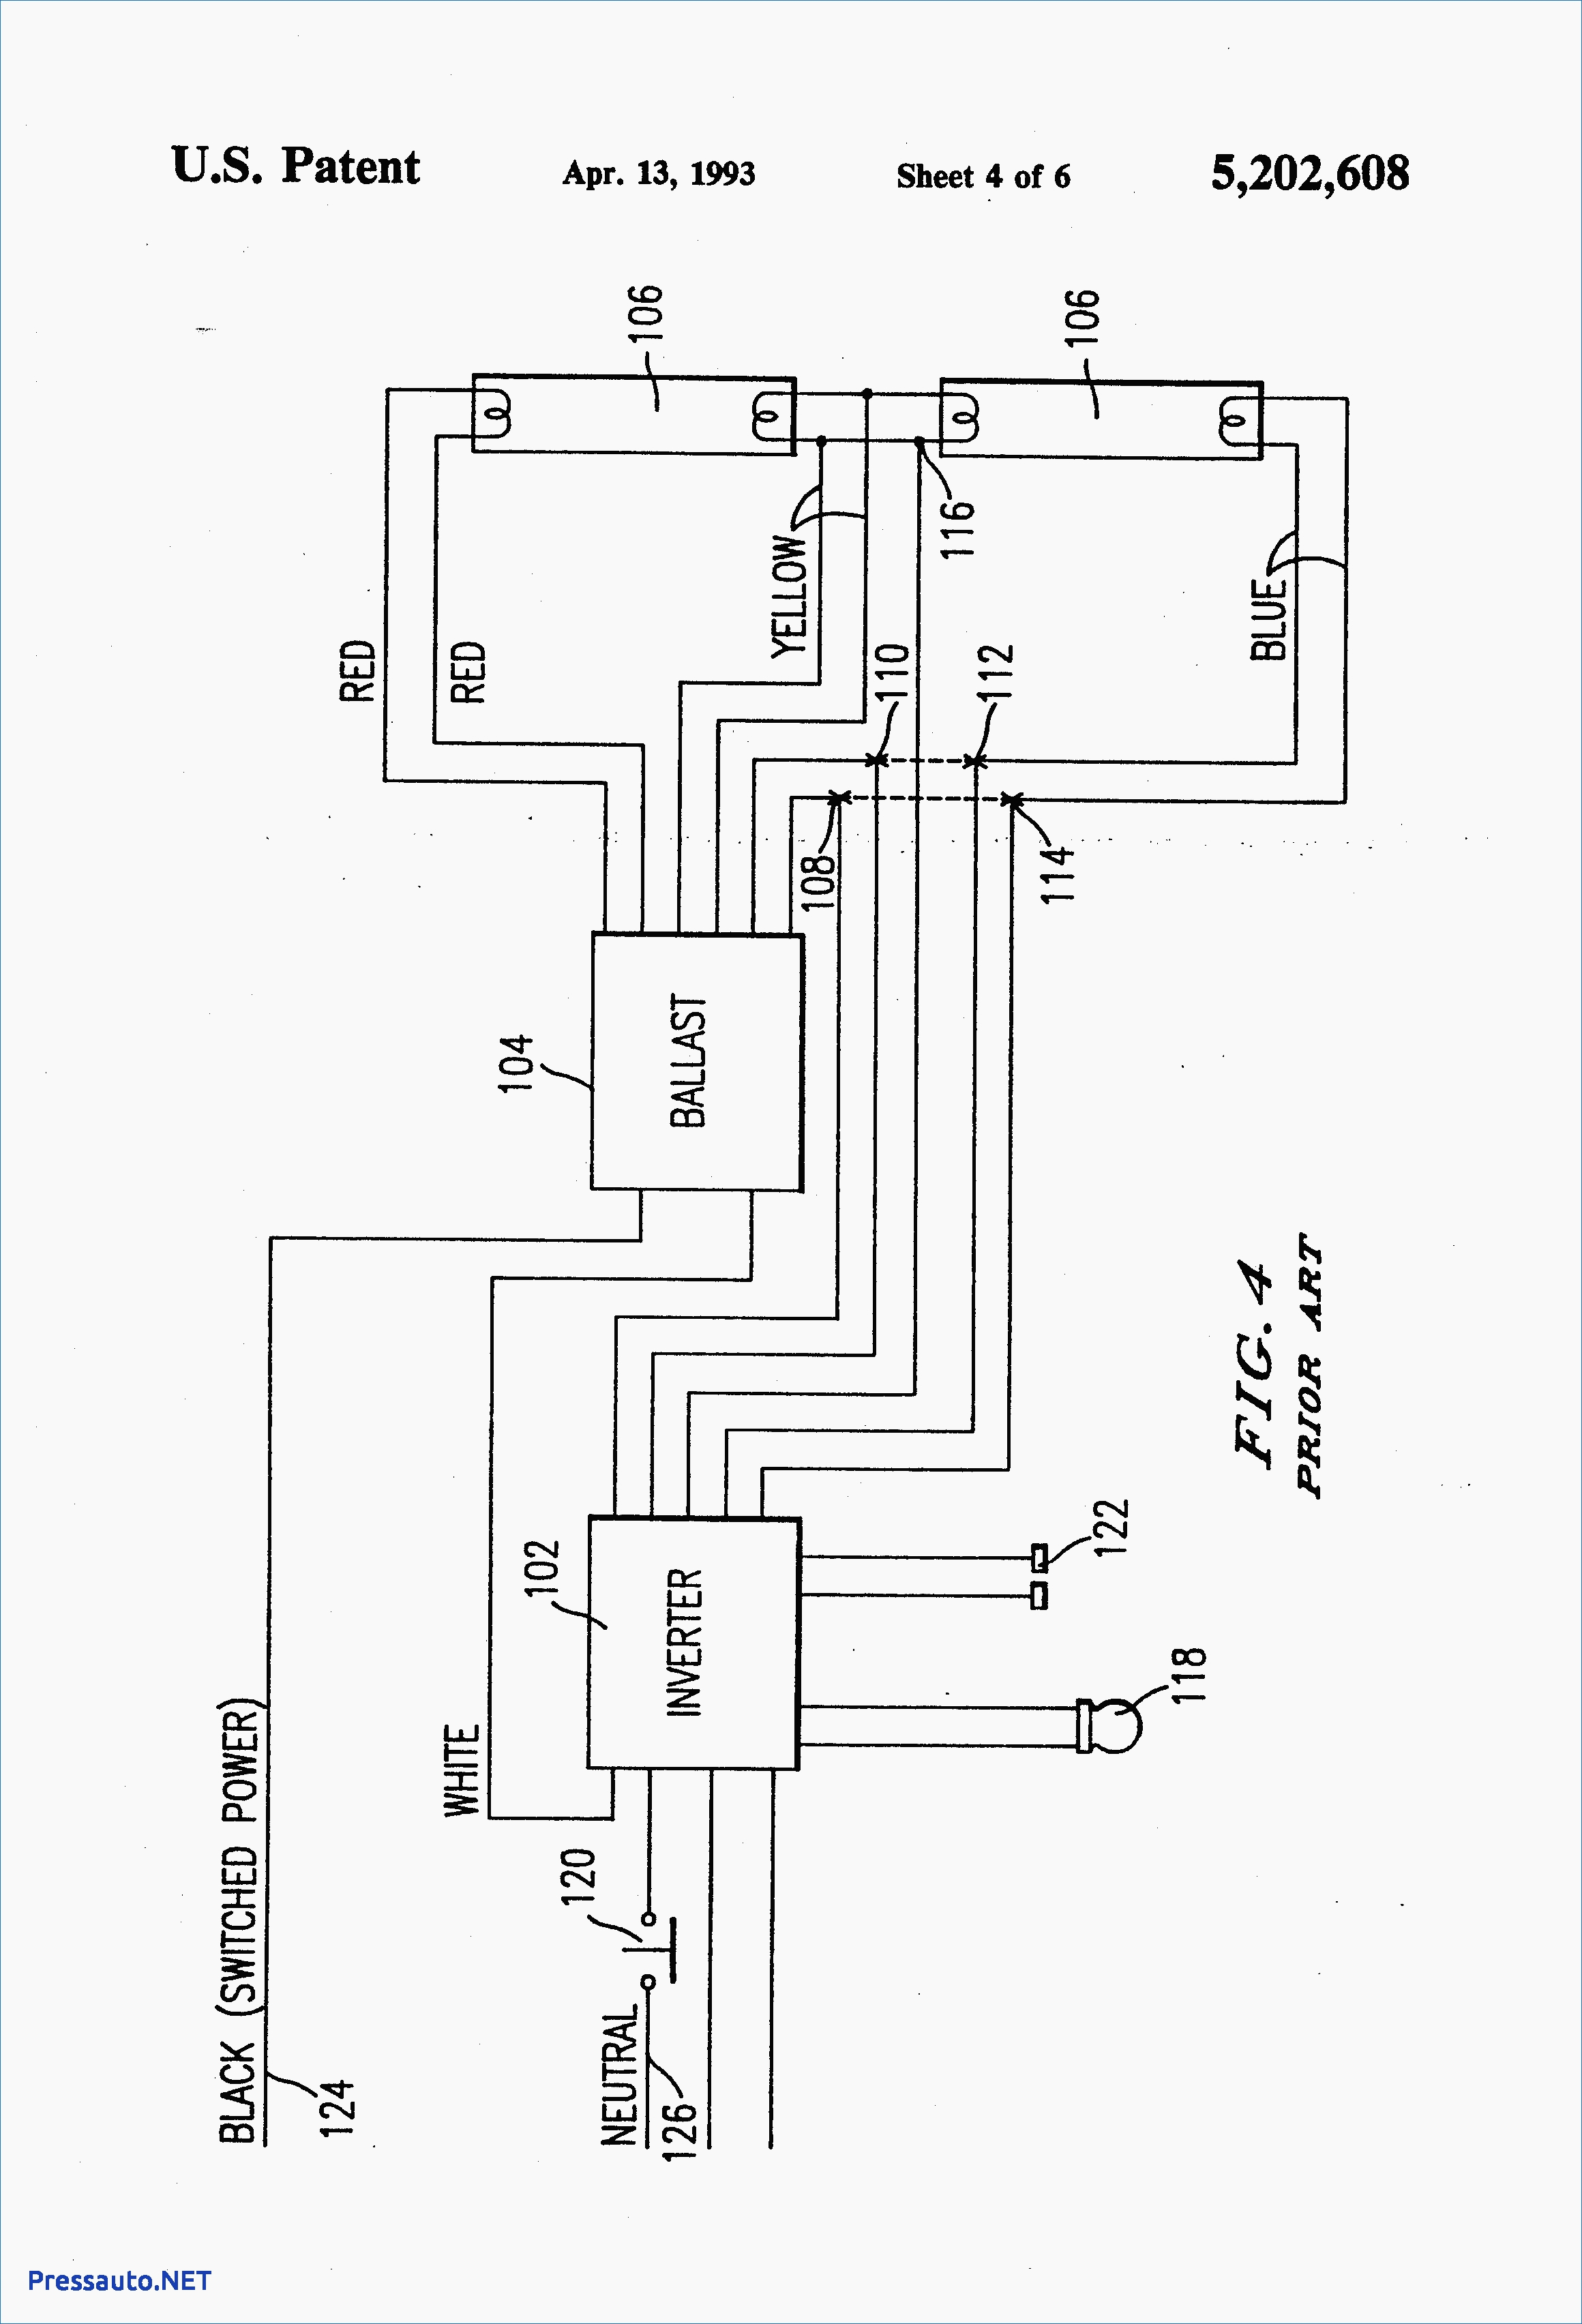 lighting contactor with photocell wiring schematic wiring diagram lighting contactor with photocell